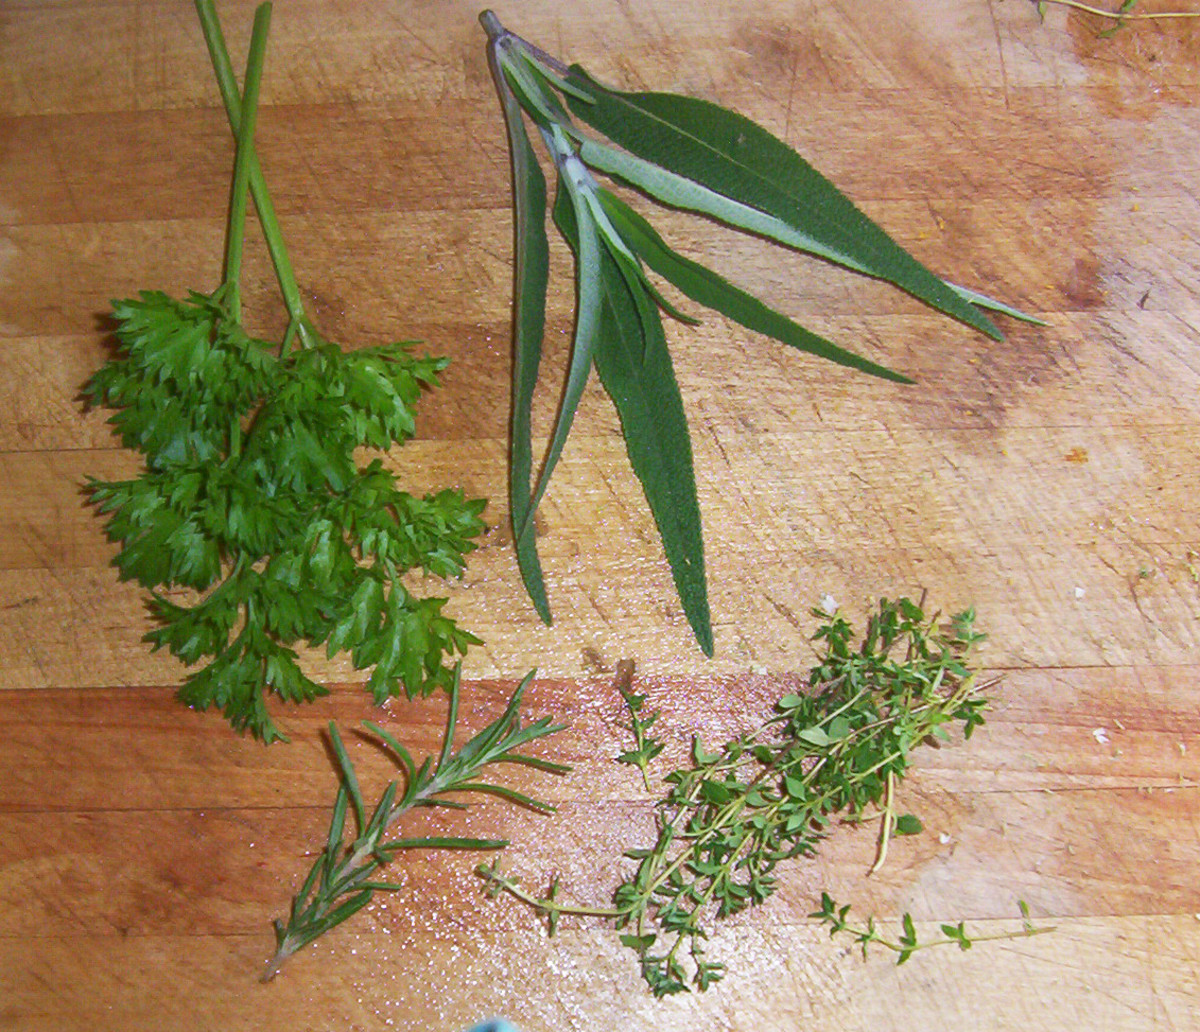 Herbs - parsley, sage, rosemary, and thyme